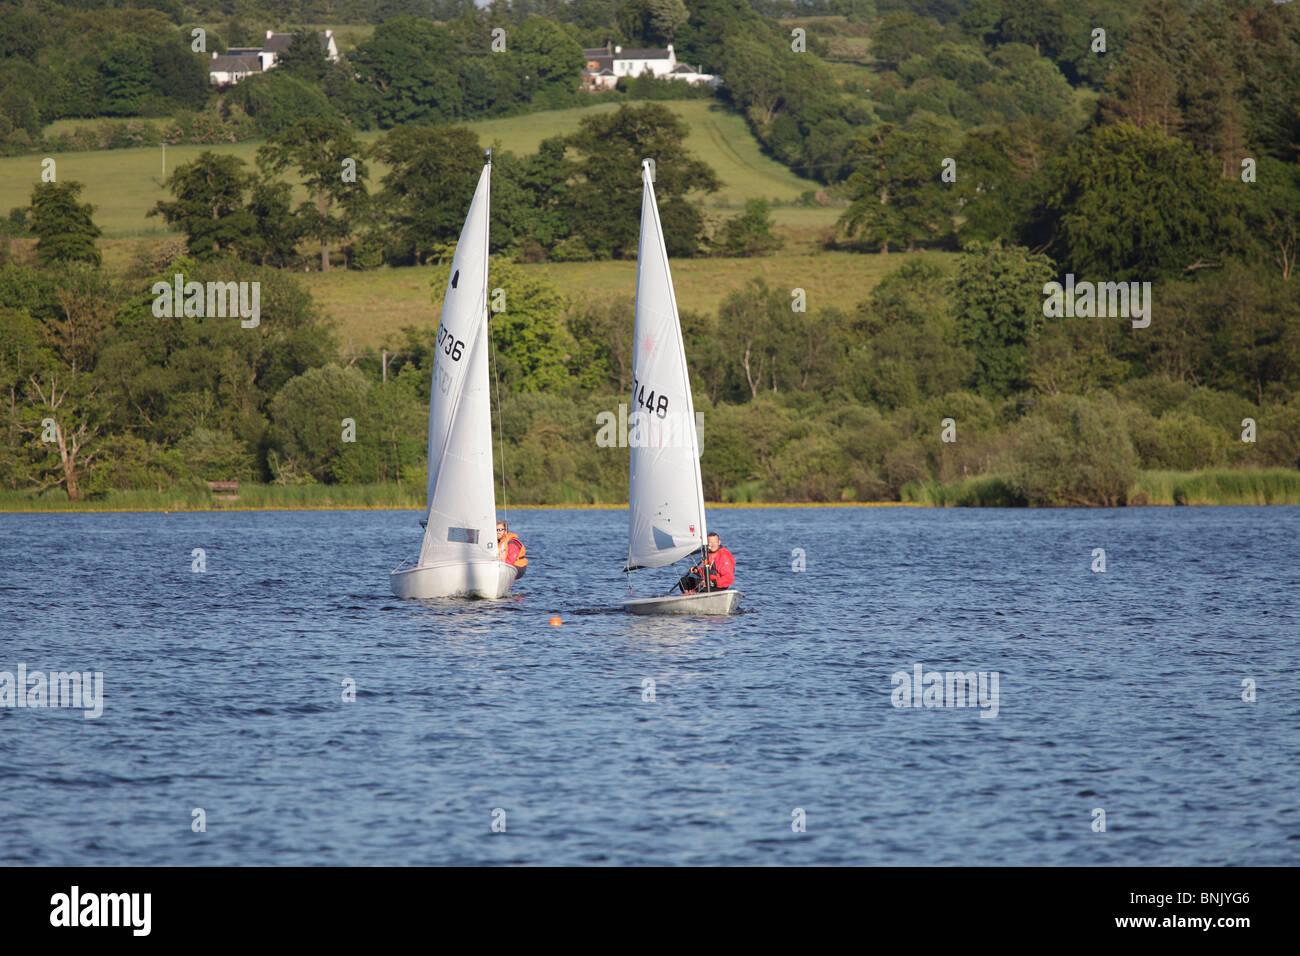 Sailing boats racing on Castle Semple Loch in Clyde Muirshiel Regional Park Lochwinnoch Renfrewshire Scotland UK - Stock Image